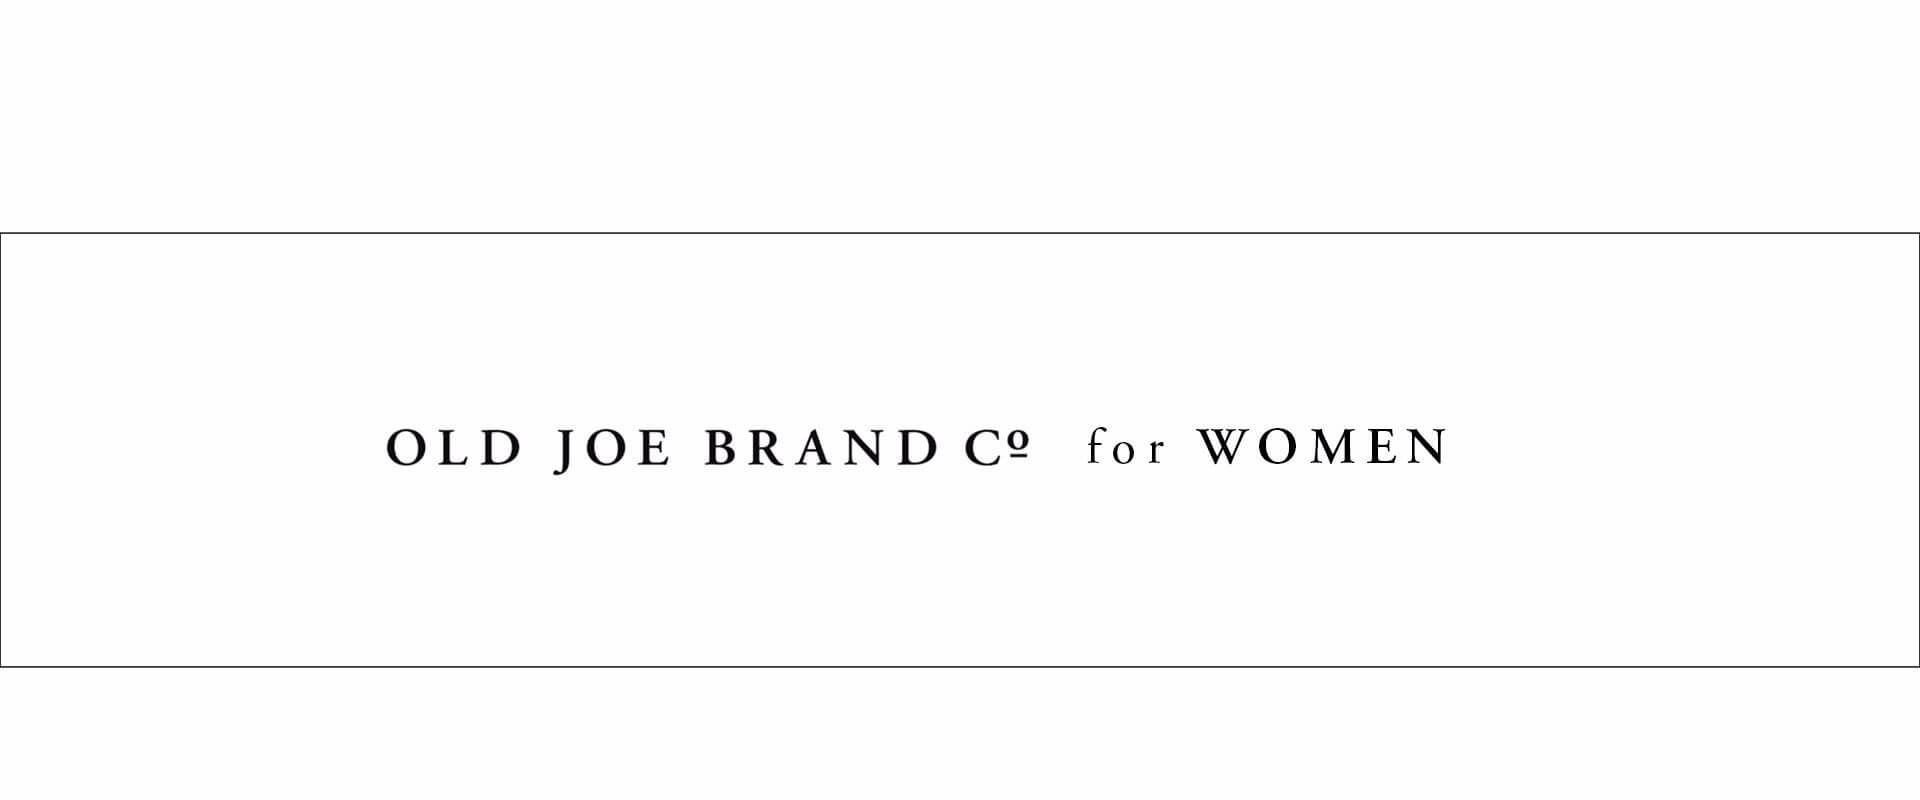 OLD JOE BRAND for WOMEN